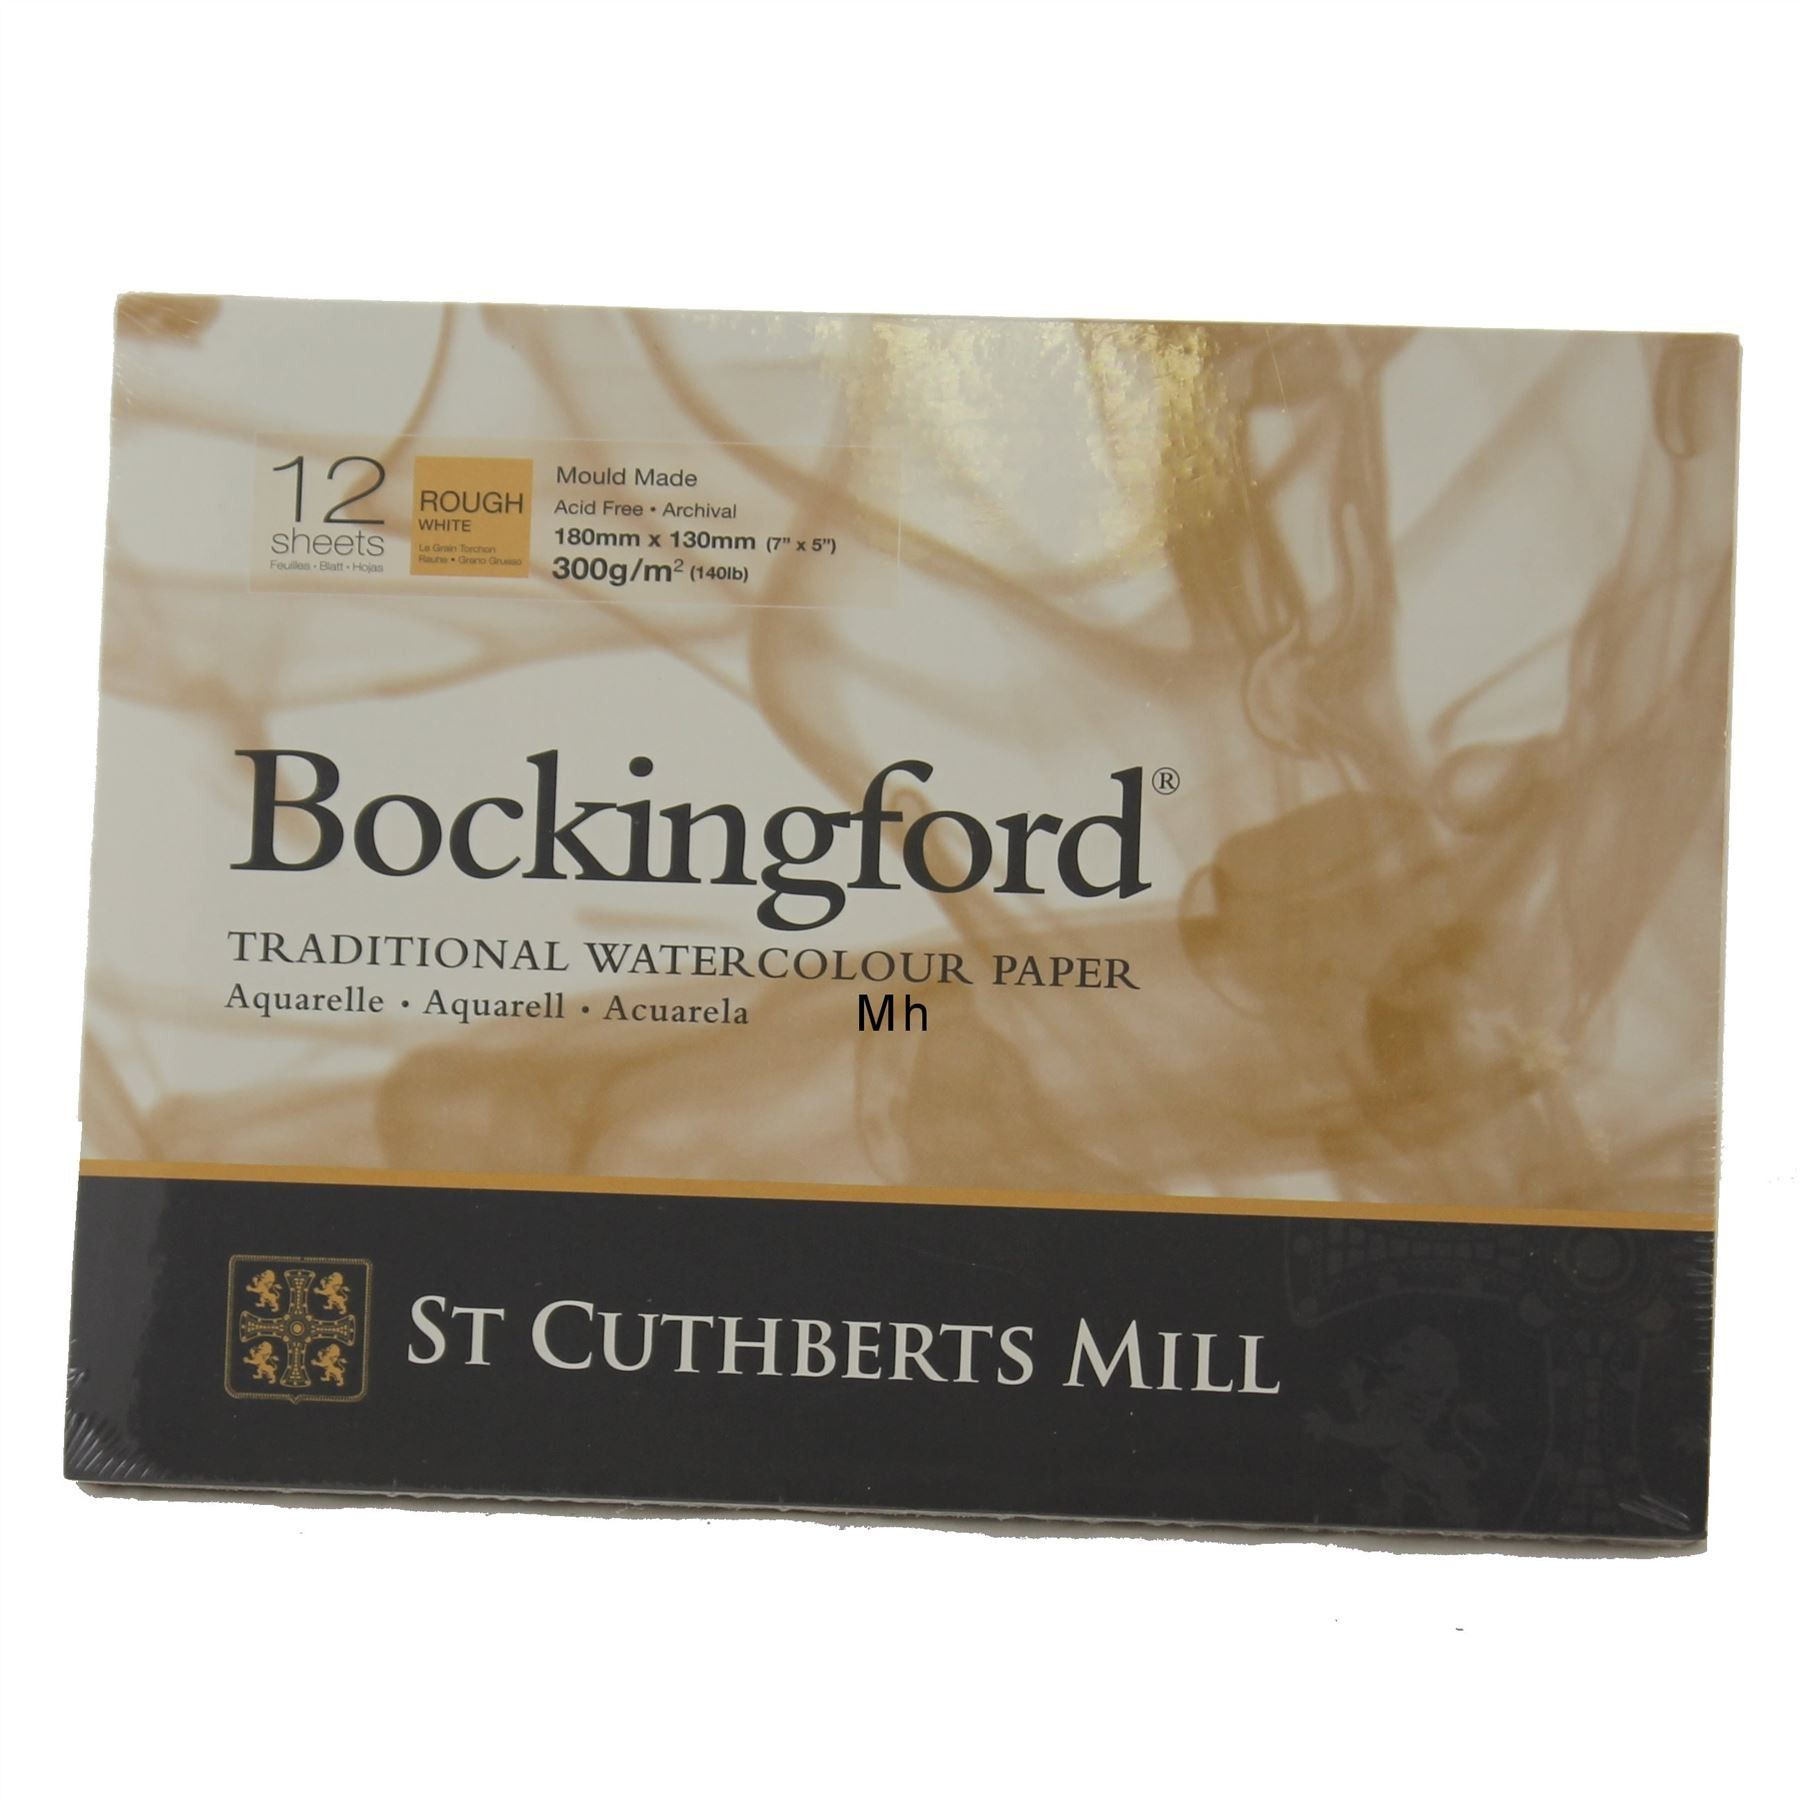 Bockingford Watercolour Pad Glued Paper 12 Sheets 7 X 5 Rough